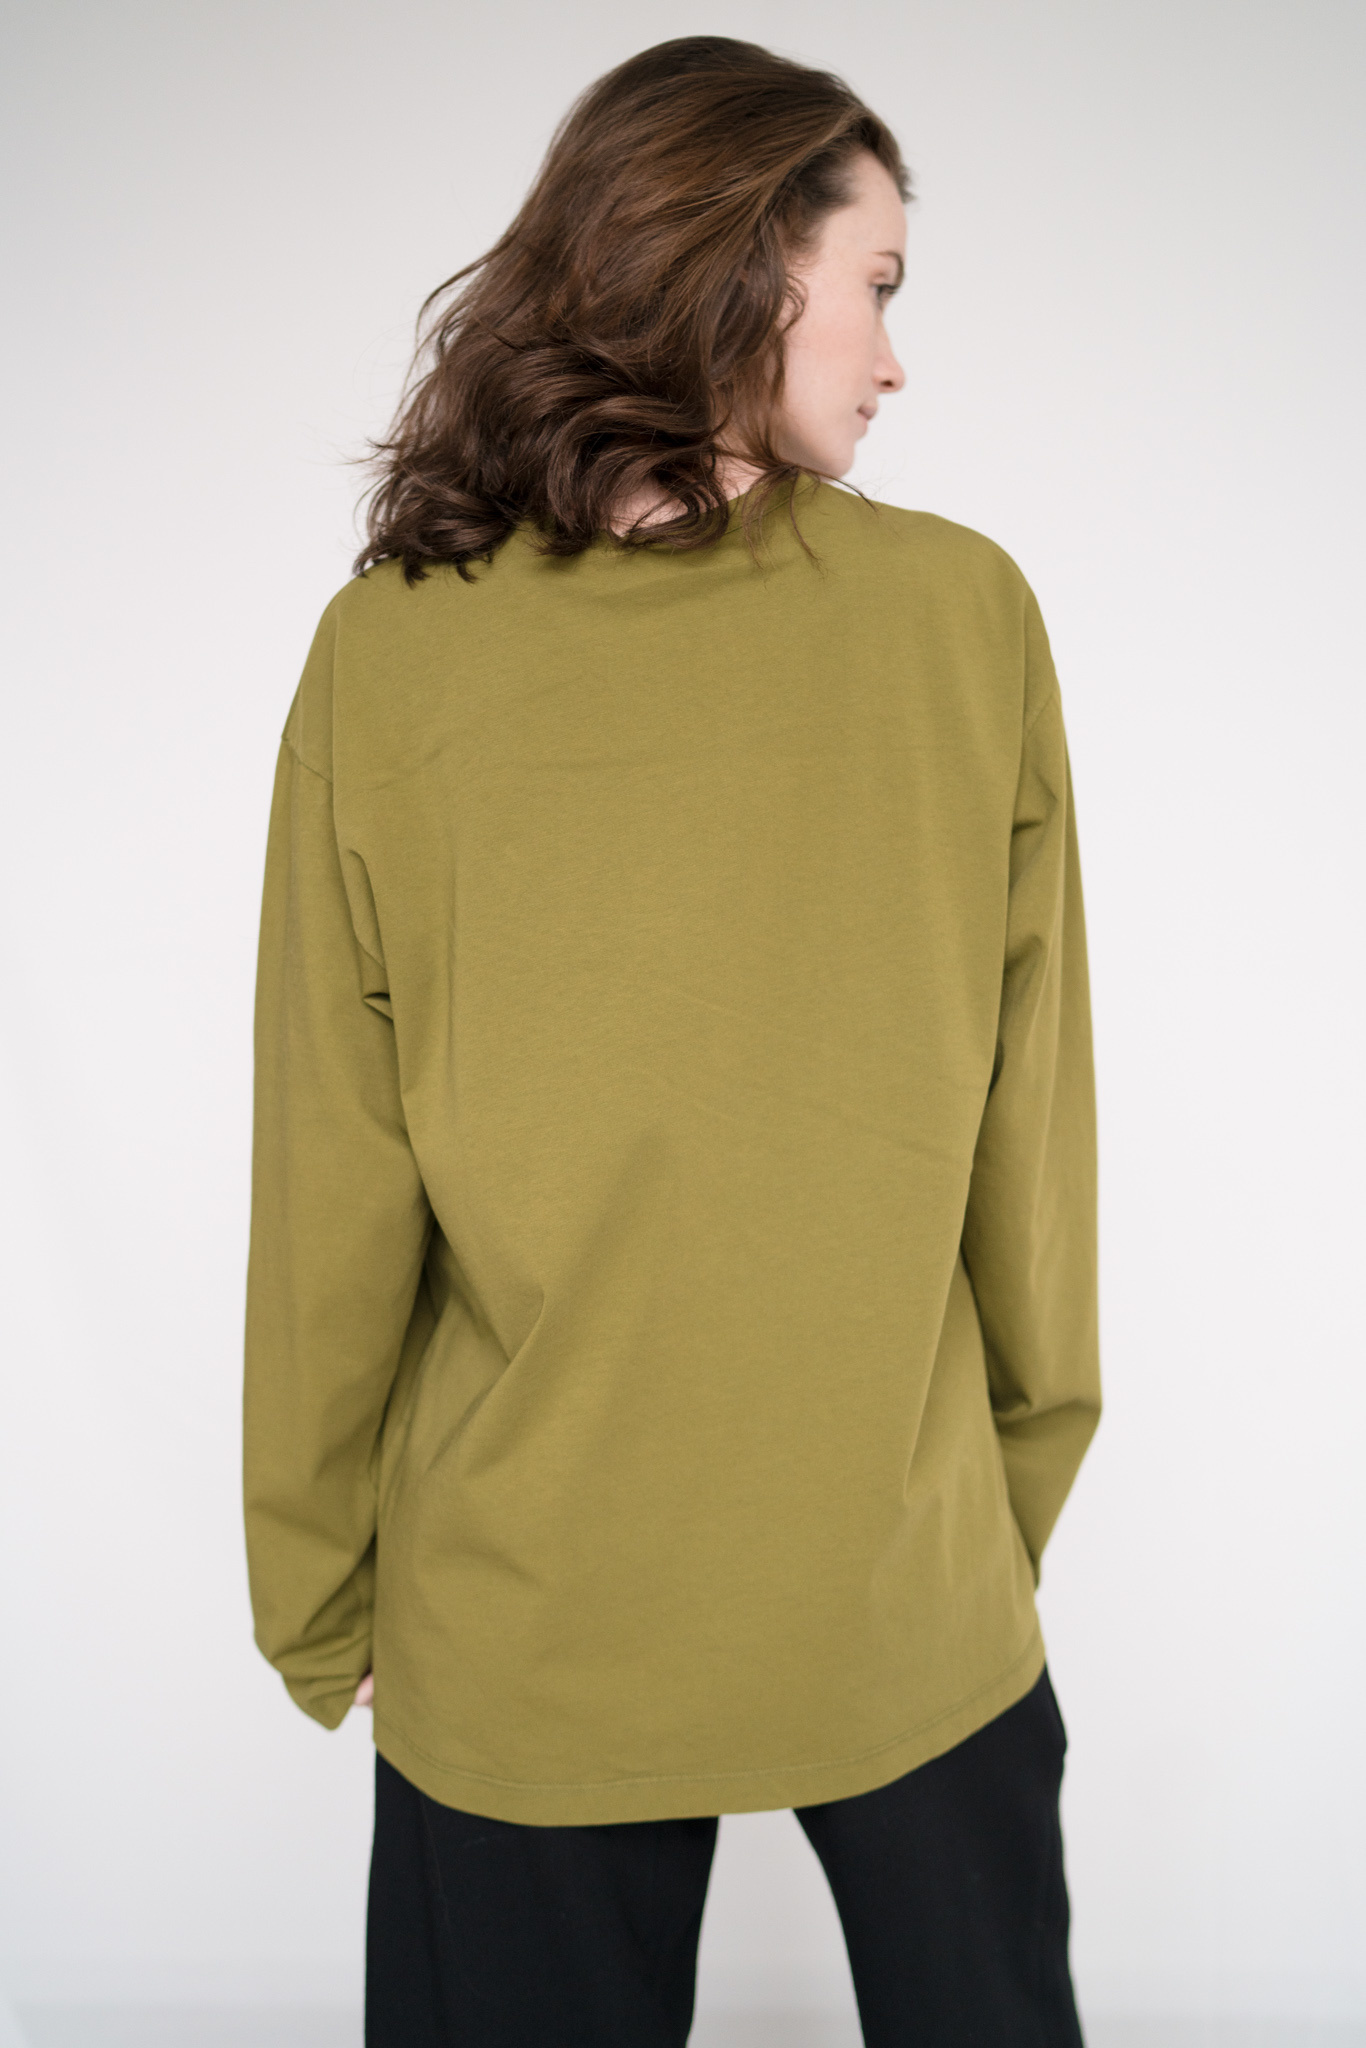 Unisex t-shirt L/S Avocado